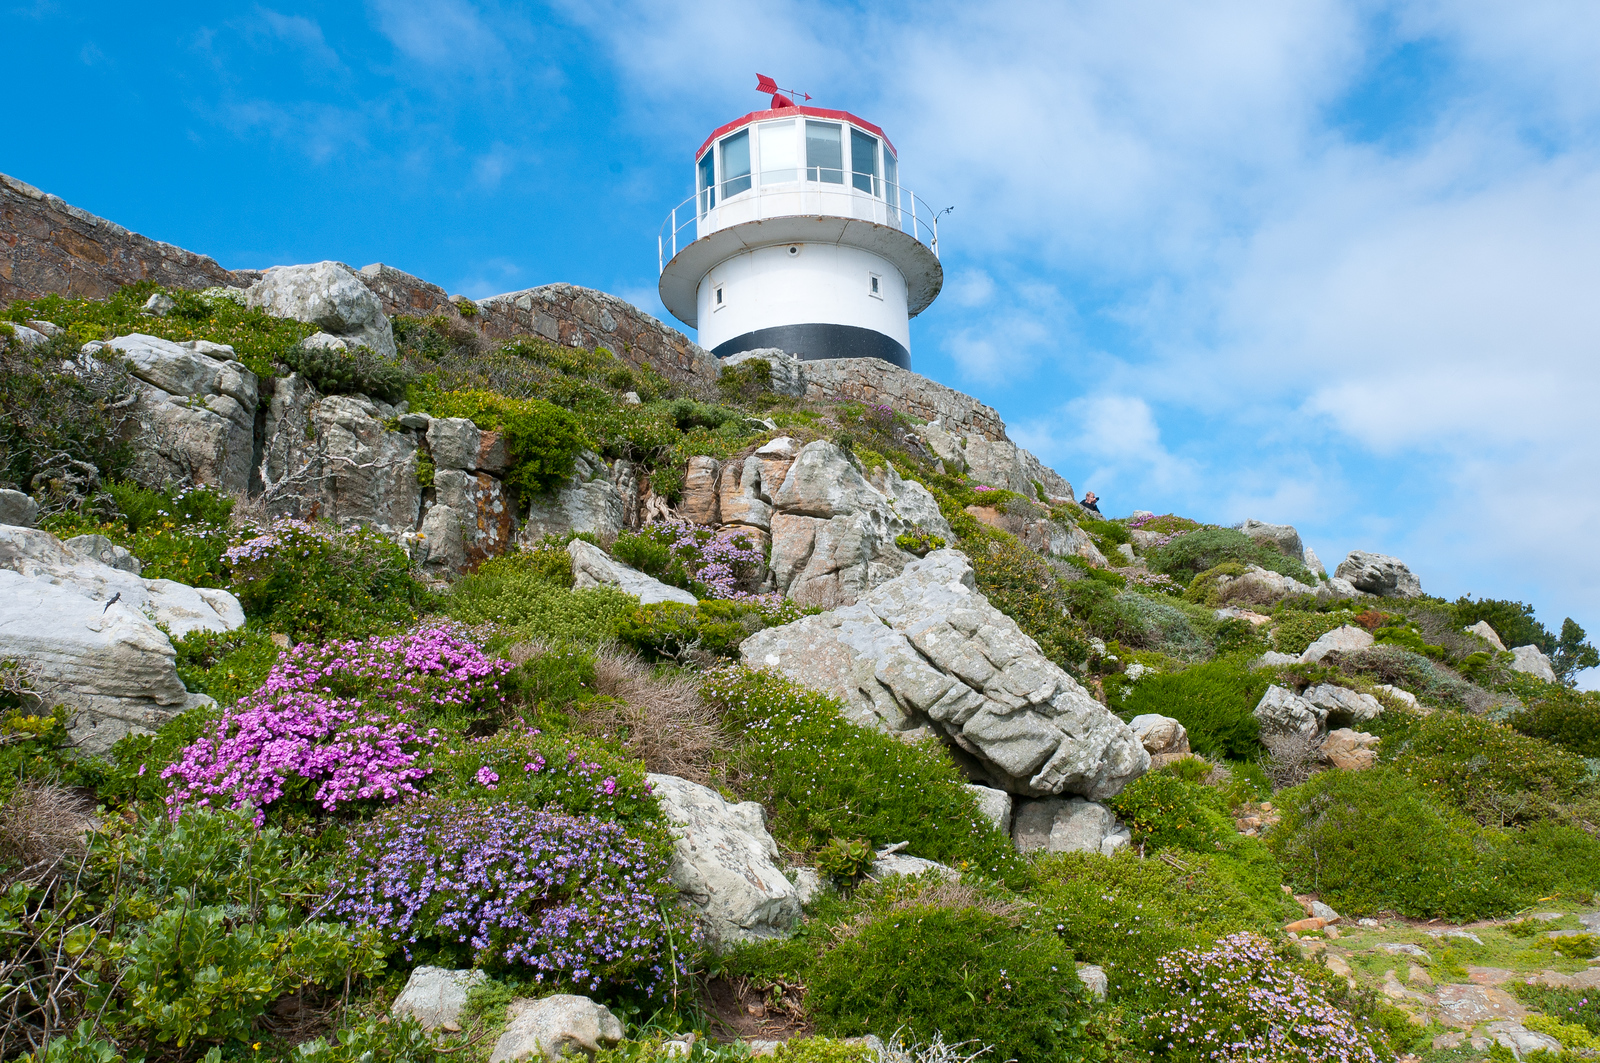 Cape Floral Region Protected Areas UNESCO World Heritage Site